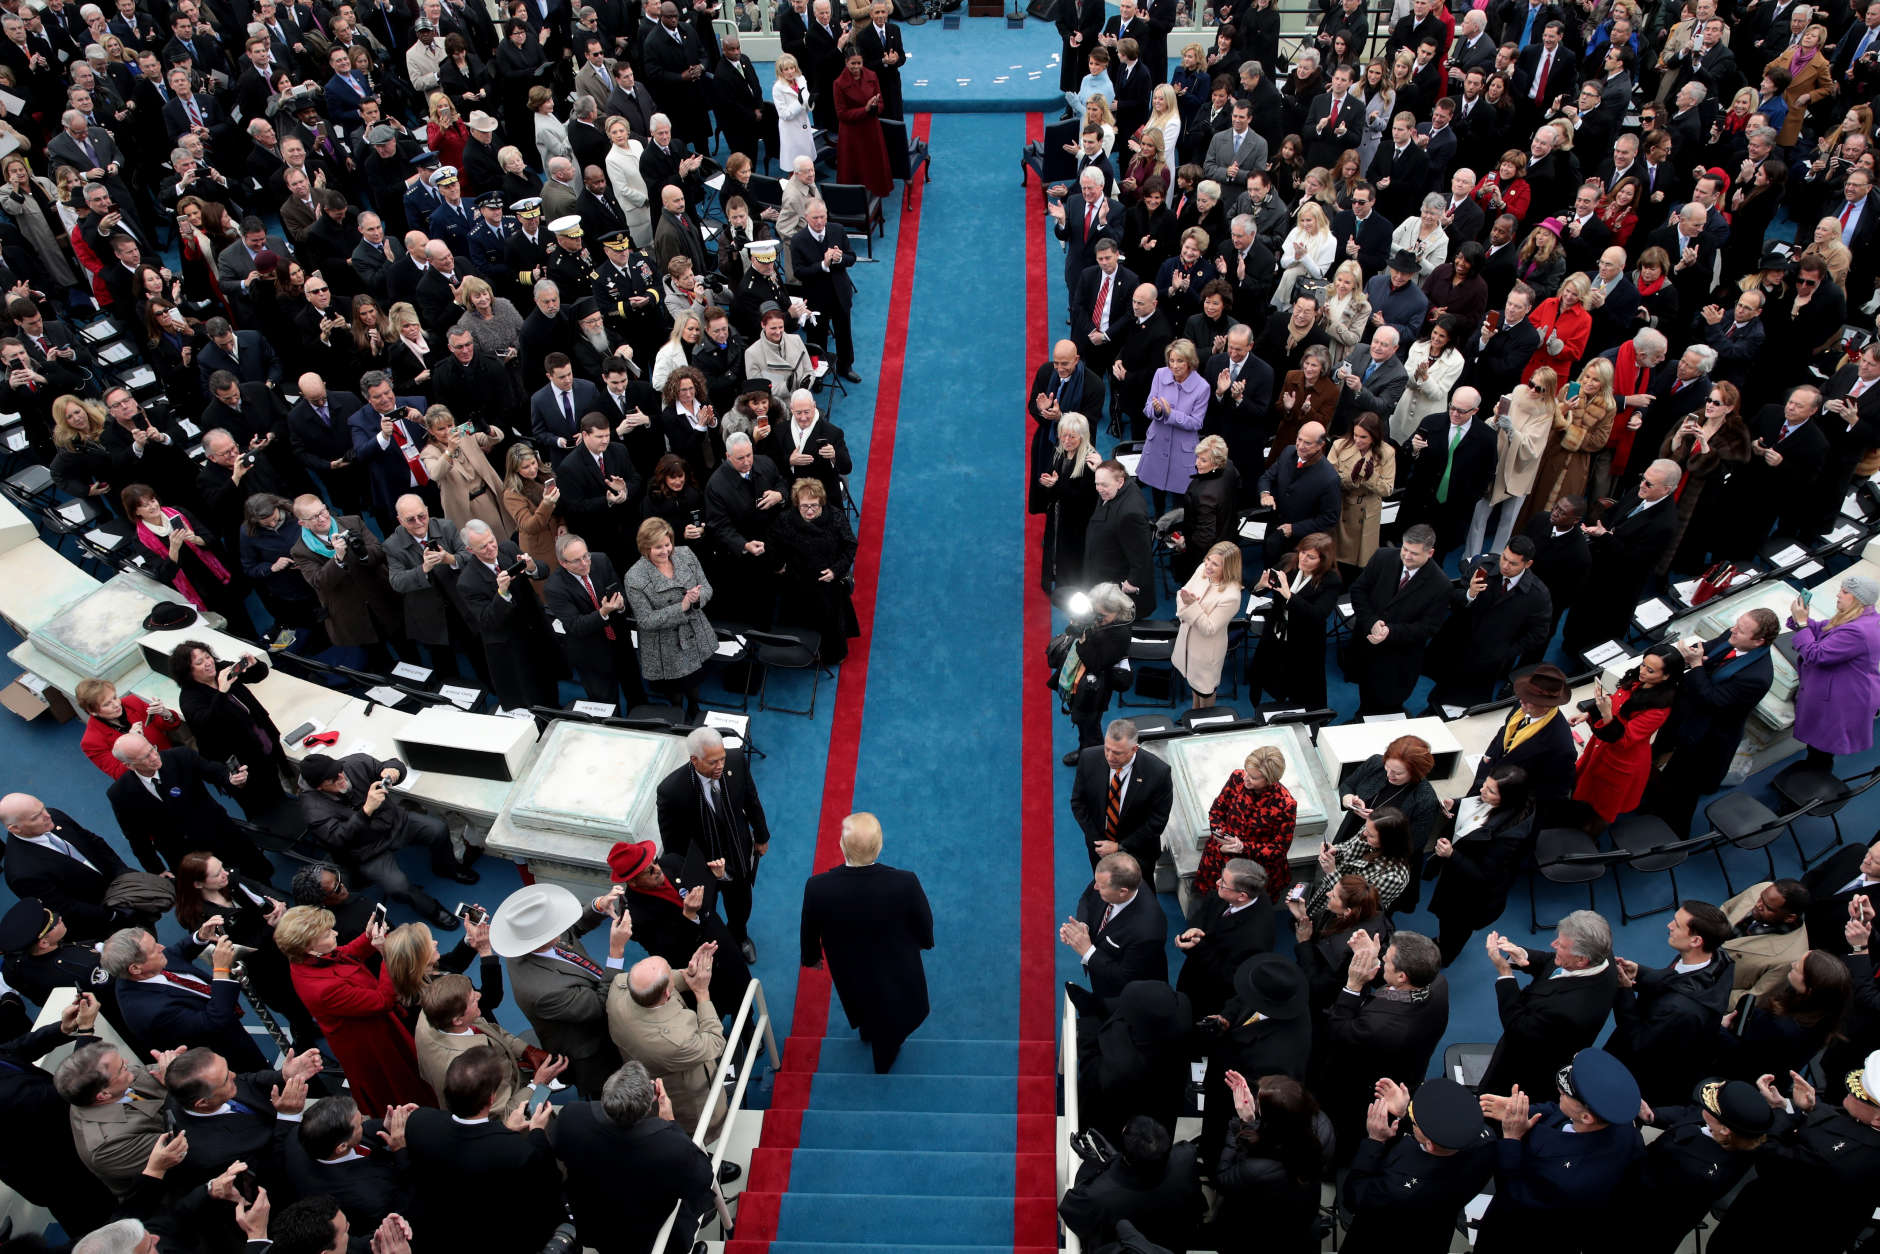 WASHINGTON, DC - JANUARY 20:  President Elect Donald Trump arrives on the West Front of the U.S. Capitol on January 20, 2017 in Washington, DC. In today's inauguration ceremony Donald J. Trump becomes the 45th president of the United States.  (Photo by Scott Olson/Getty Images)